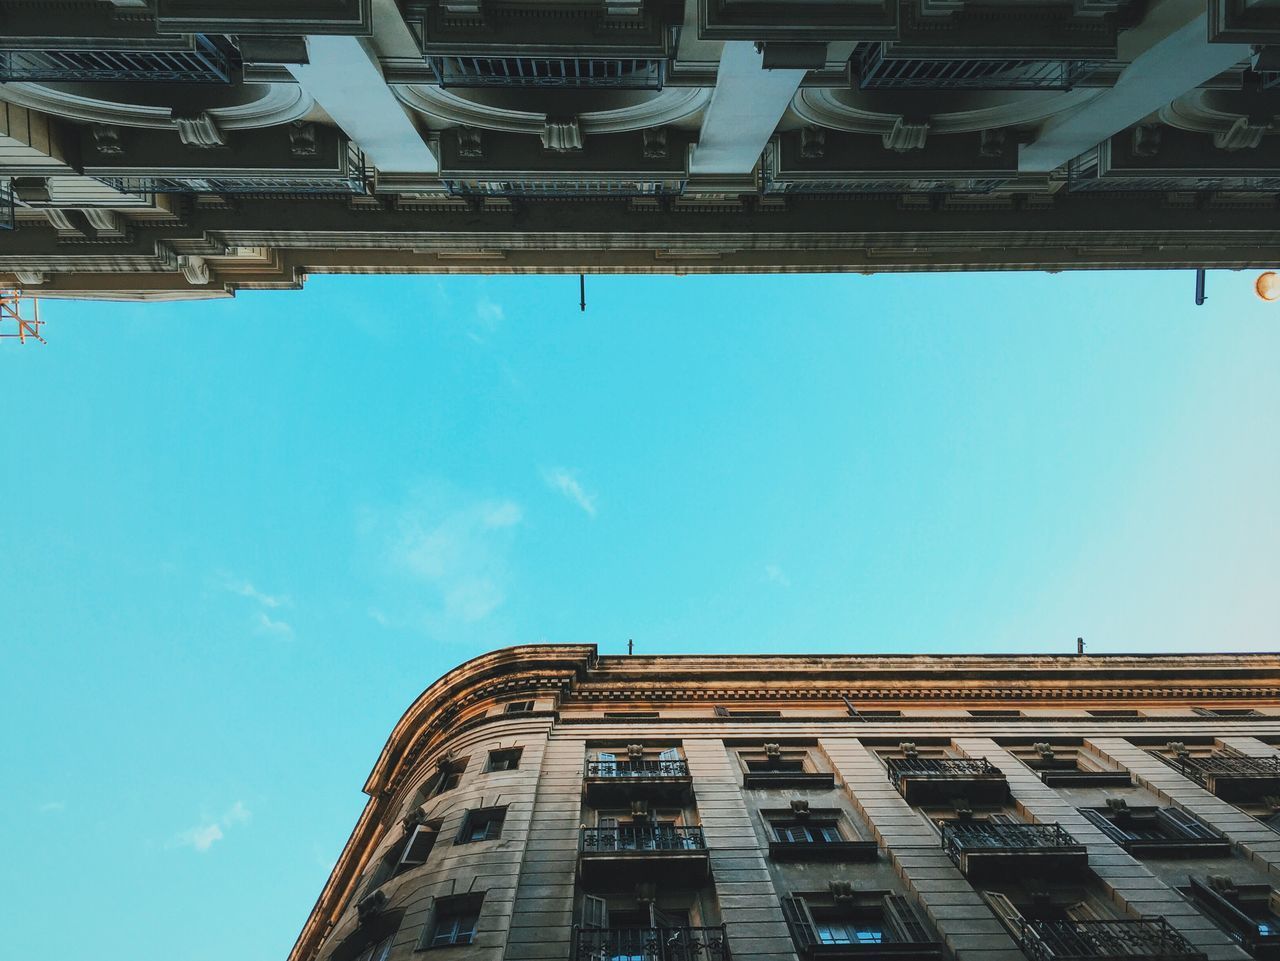 'Round the corner. Architecture Looking Up Blue Sky Concrete Jungle Wanderlust Vscocam VSCO Traveling